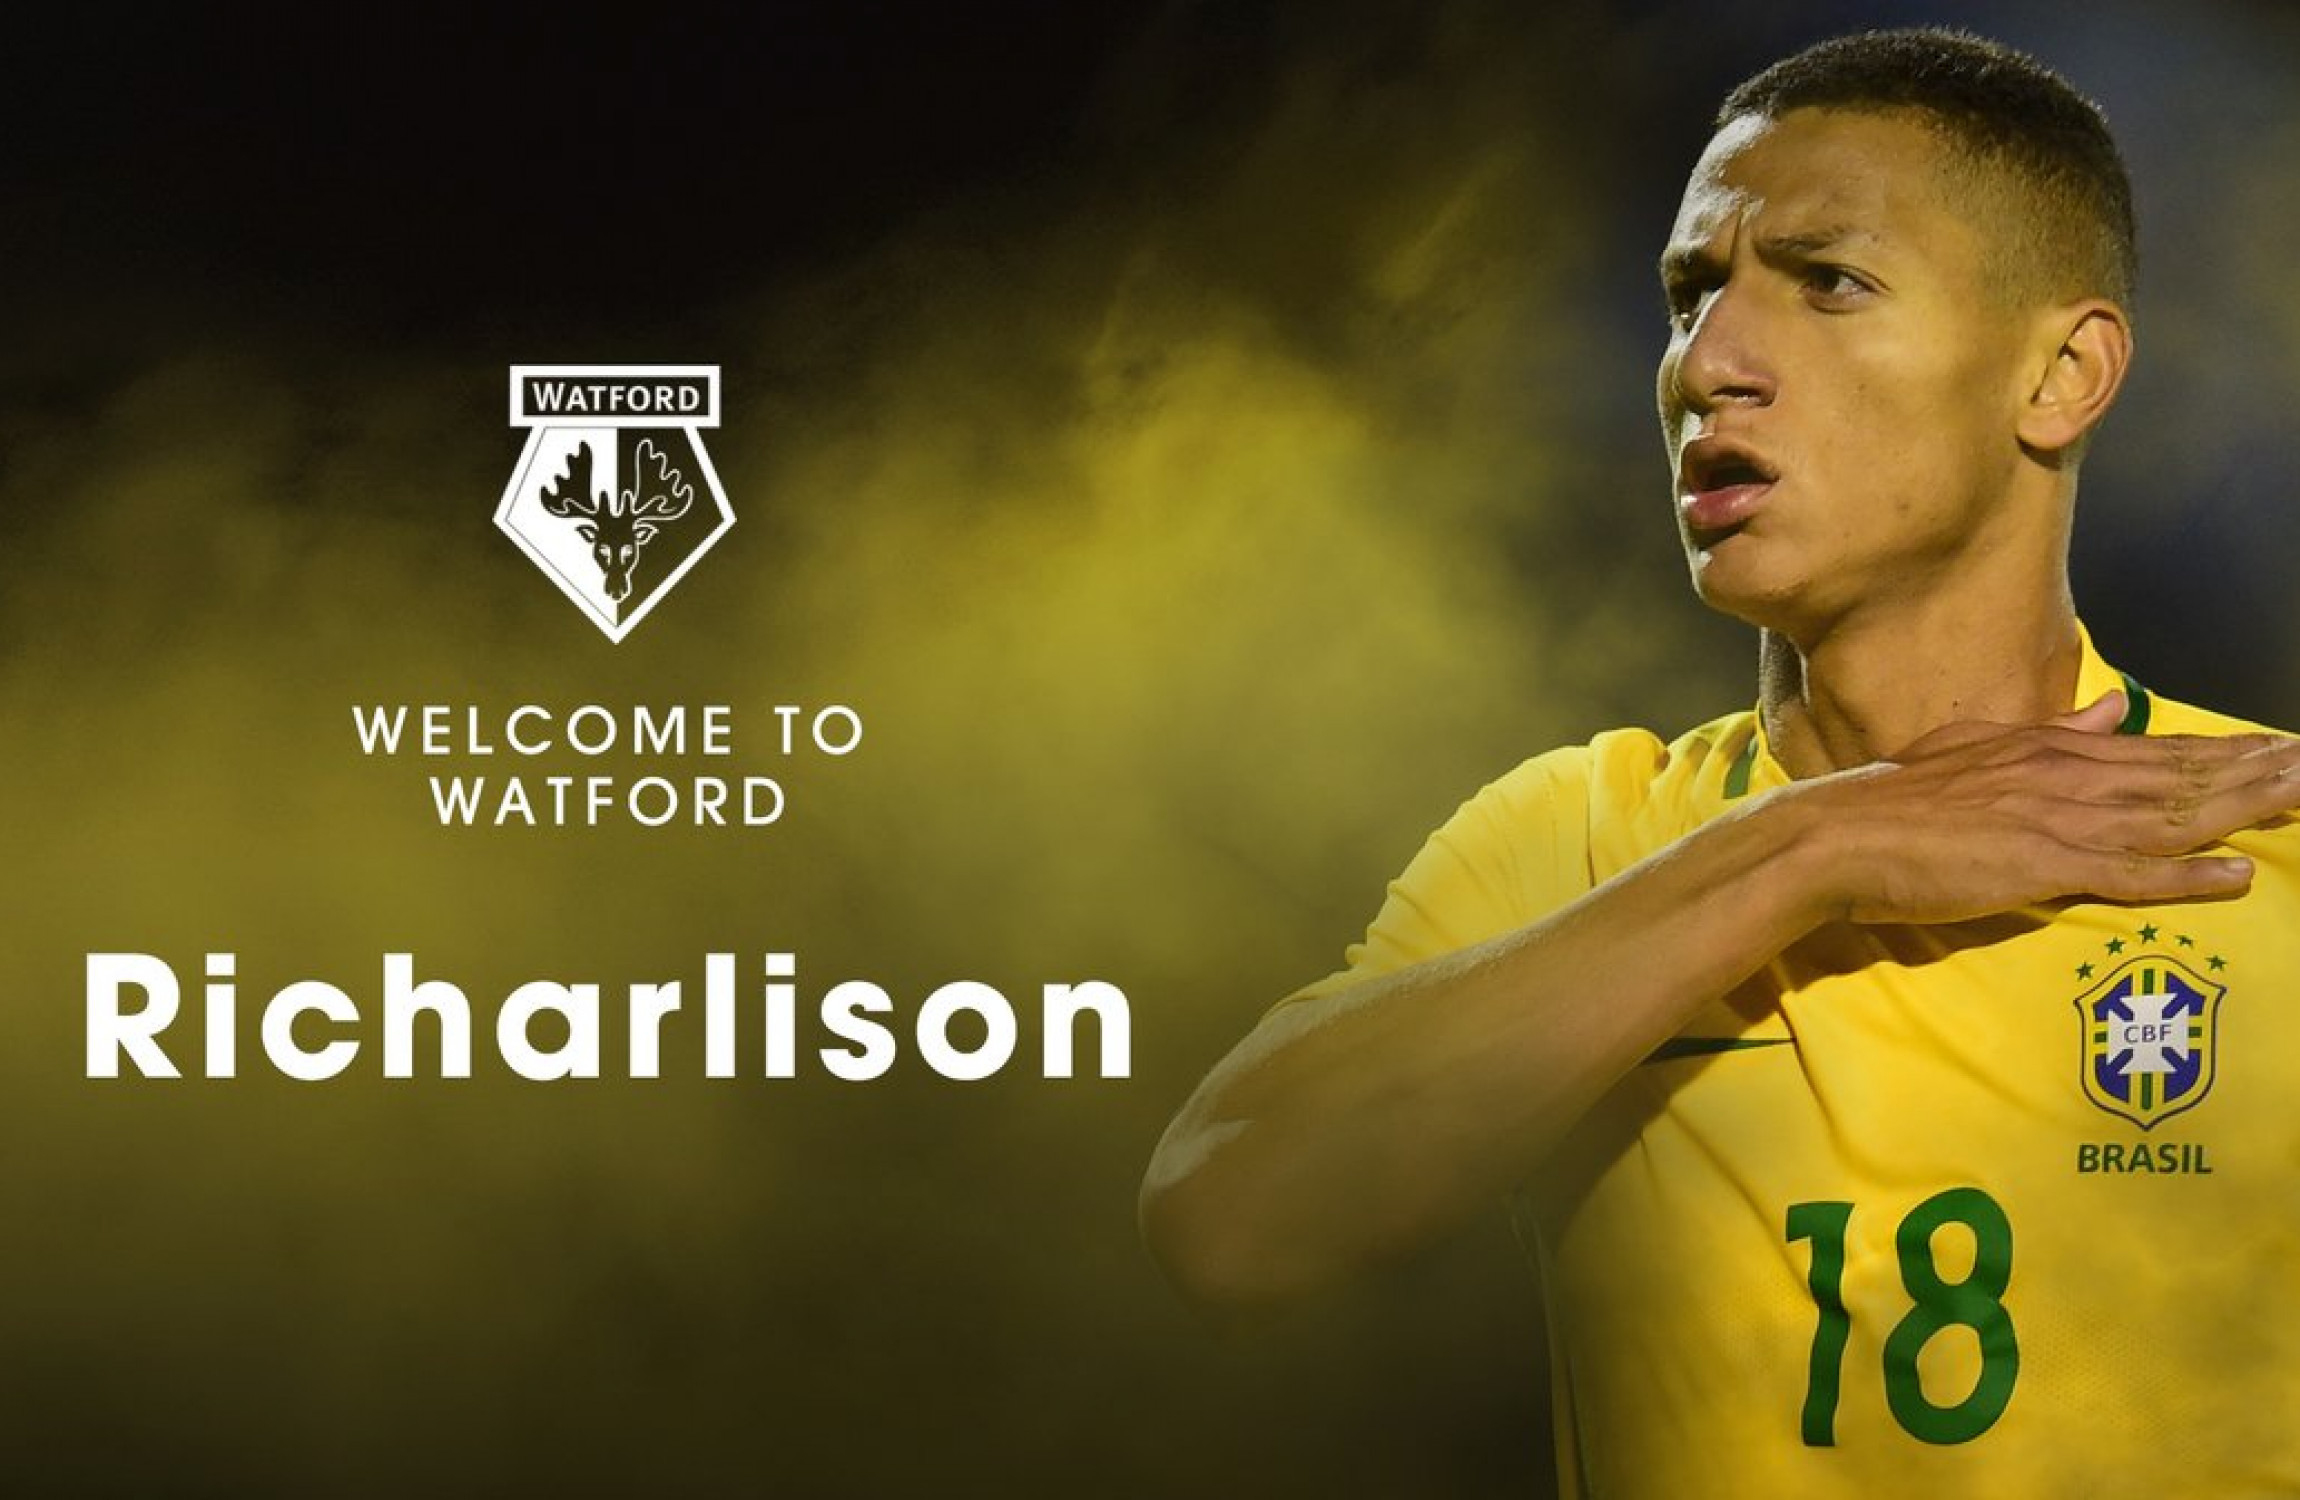 Richarlison: Watford sign Brazil Under-20 forward on five-year deal